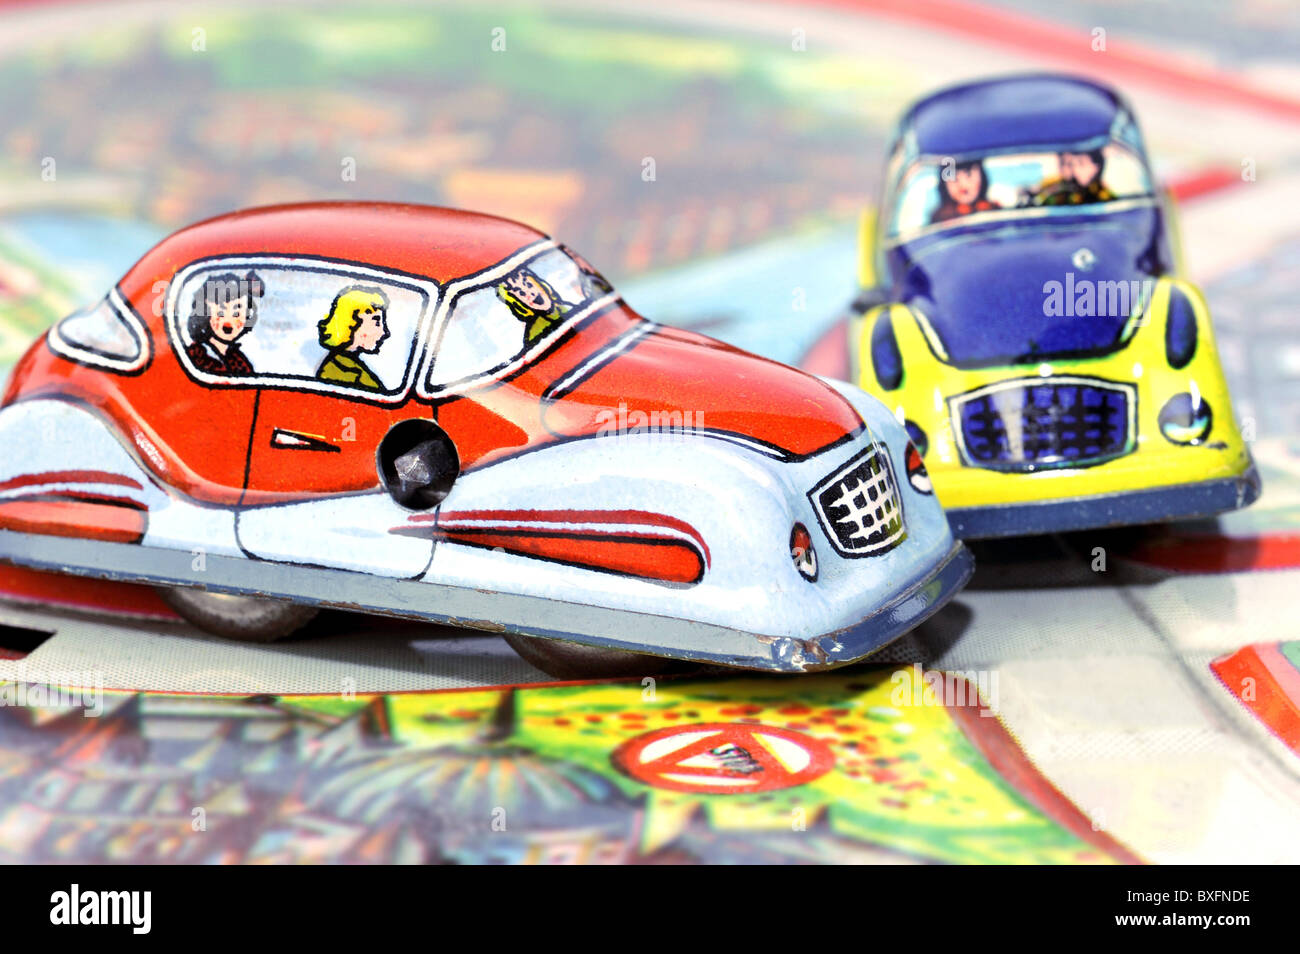 Toys Toy Cars Car Crash Germany 1950s 50s 20th Century Stock